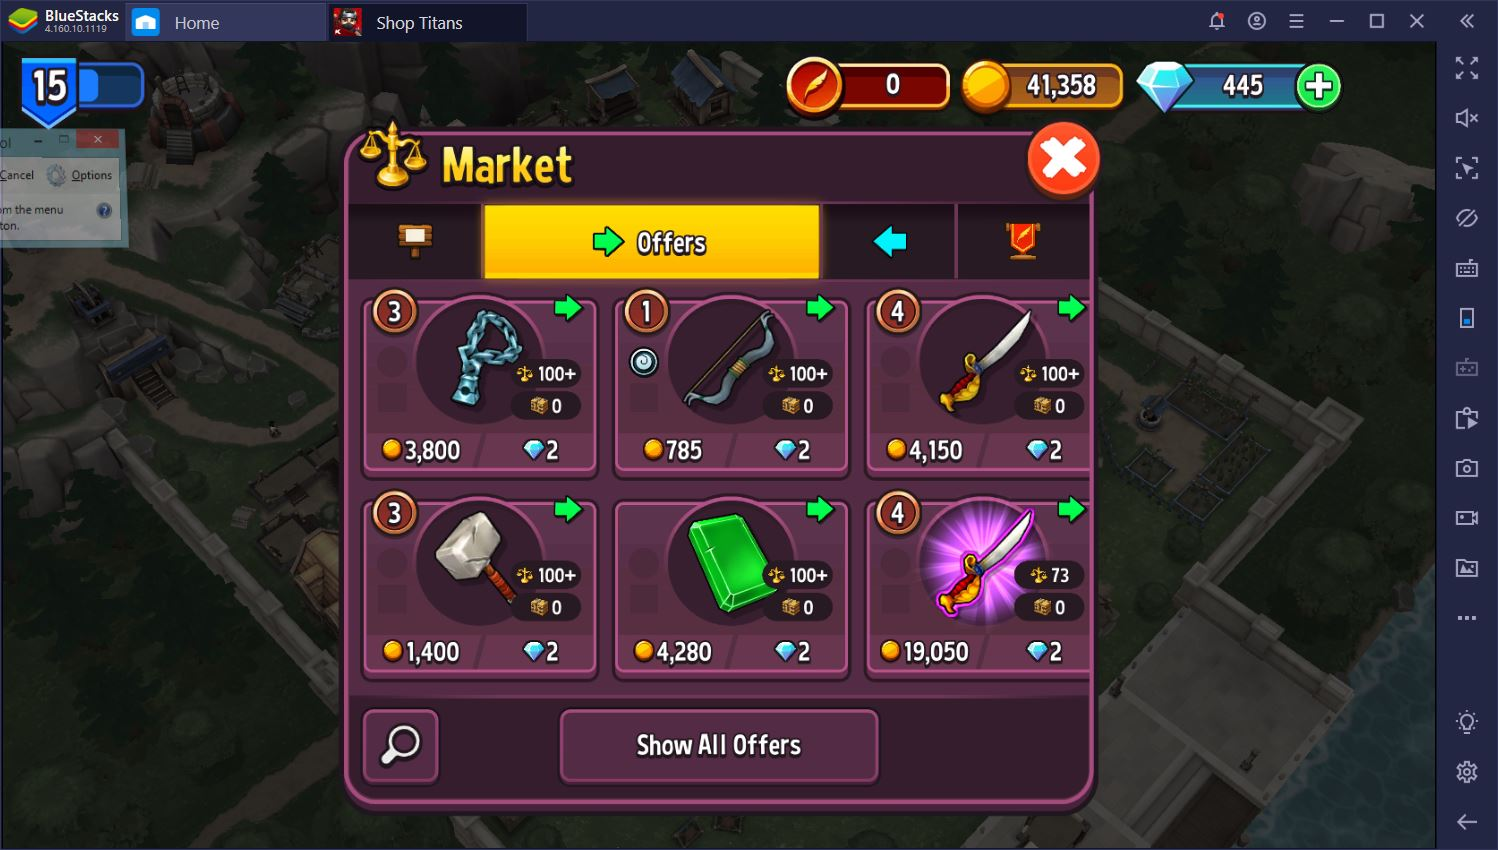 Shop Titans on PC: How to Make More Money Quickly